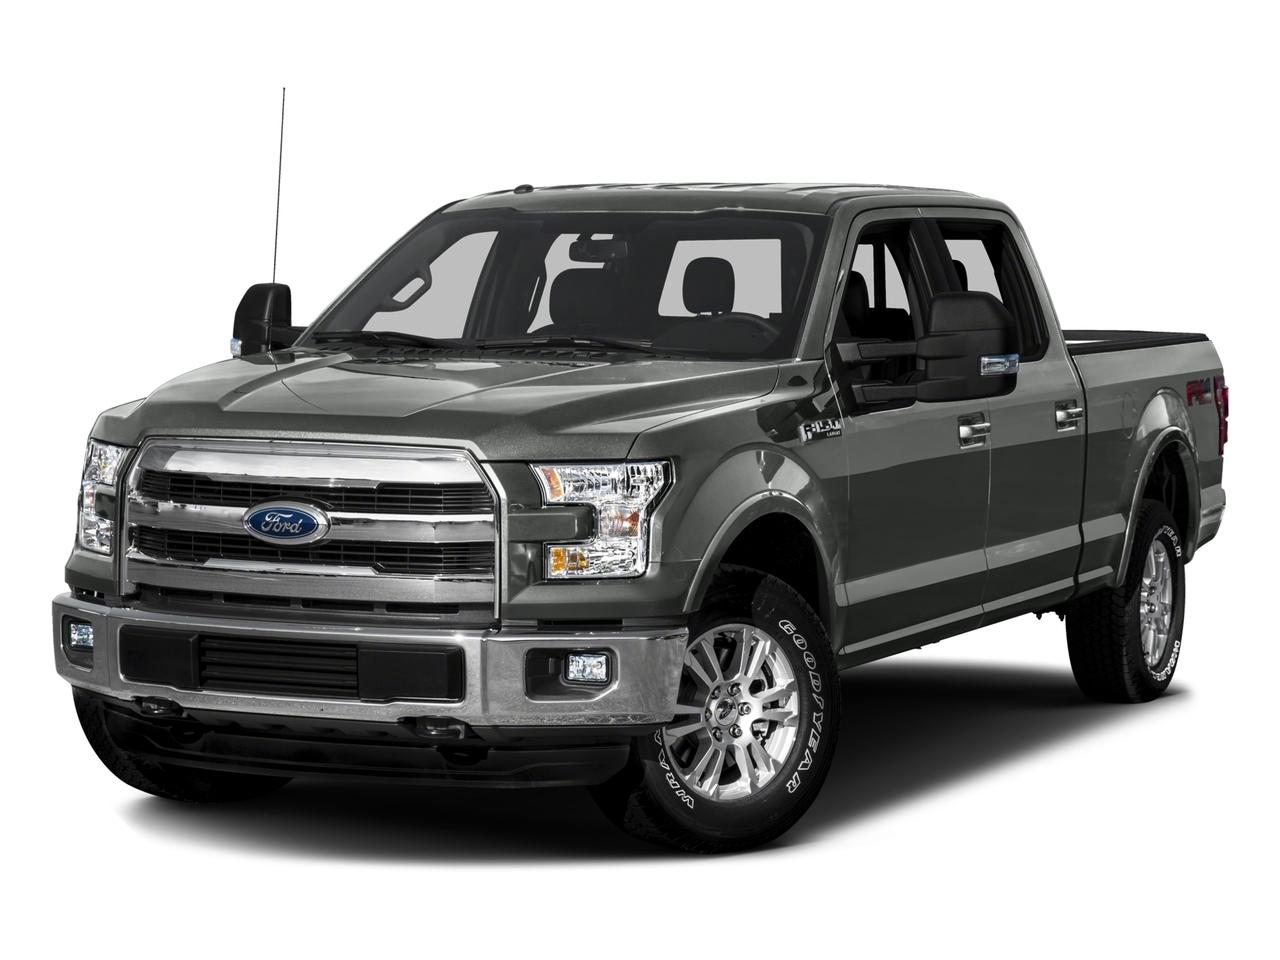 2016 Ford F-150 Vehicle Photo in Washington, NJ 07882